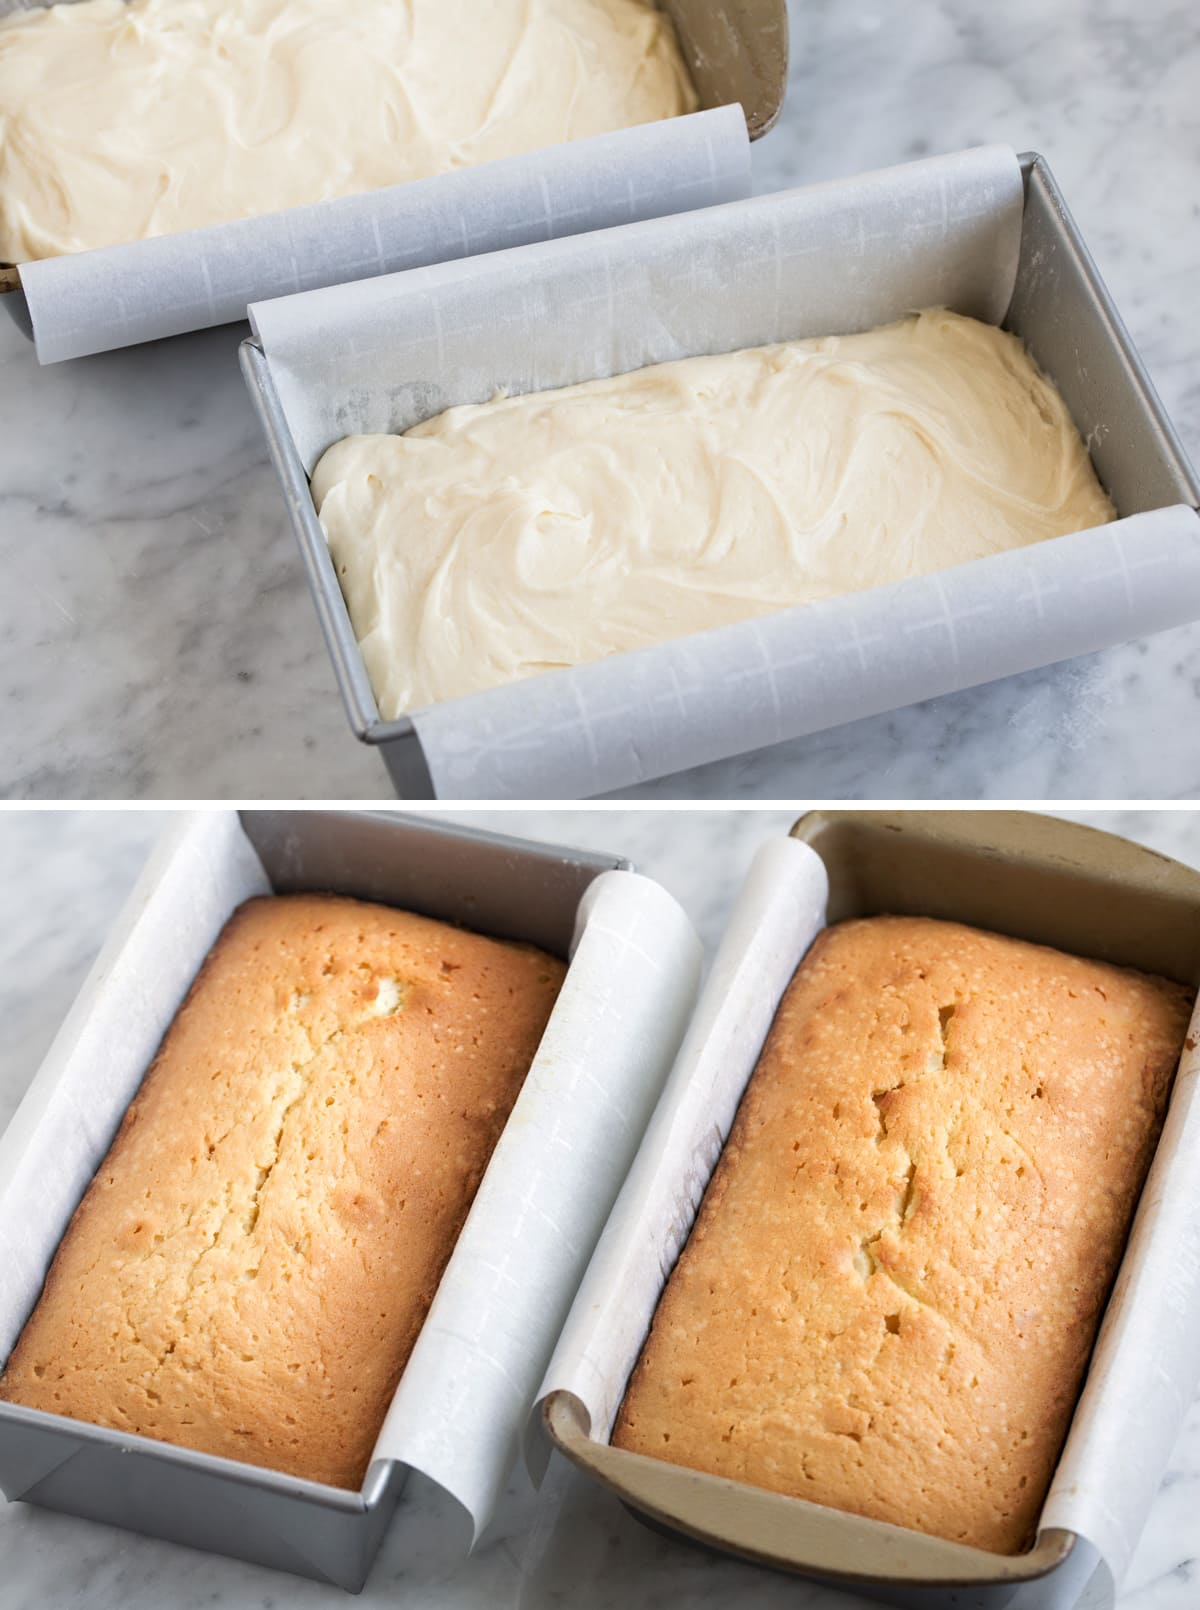 Pound cake batter in two parchment paper lined loaf pans before baking then shown after baking.